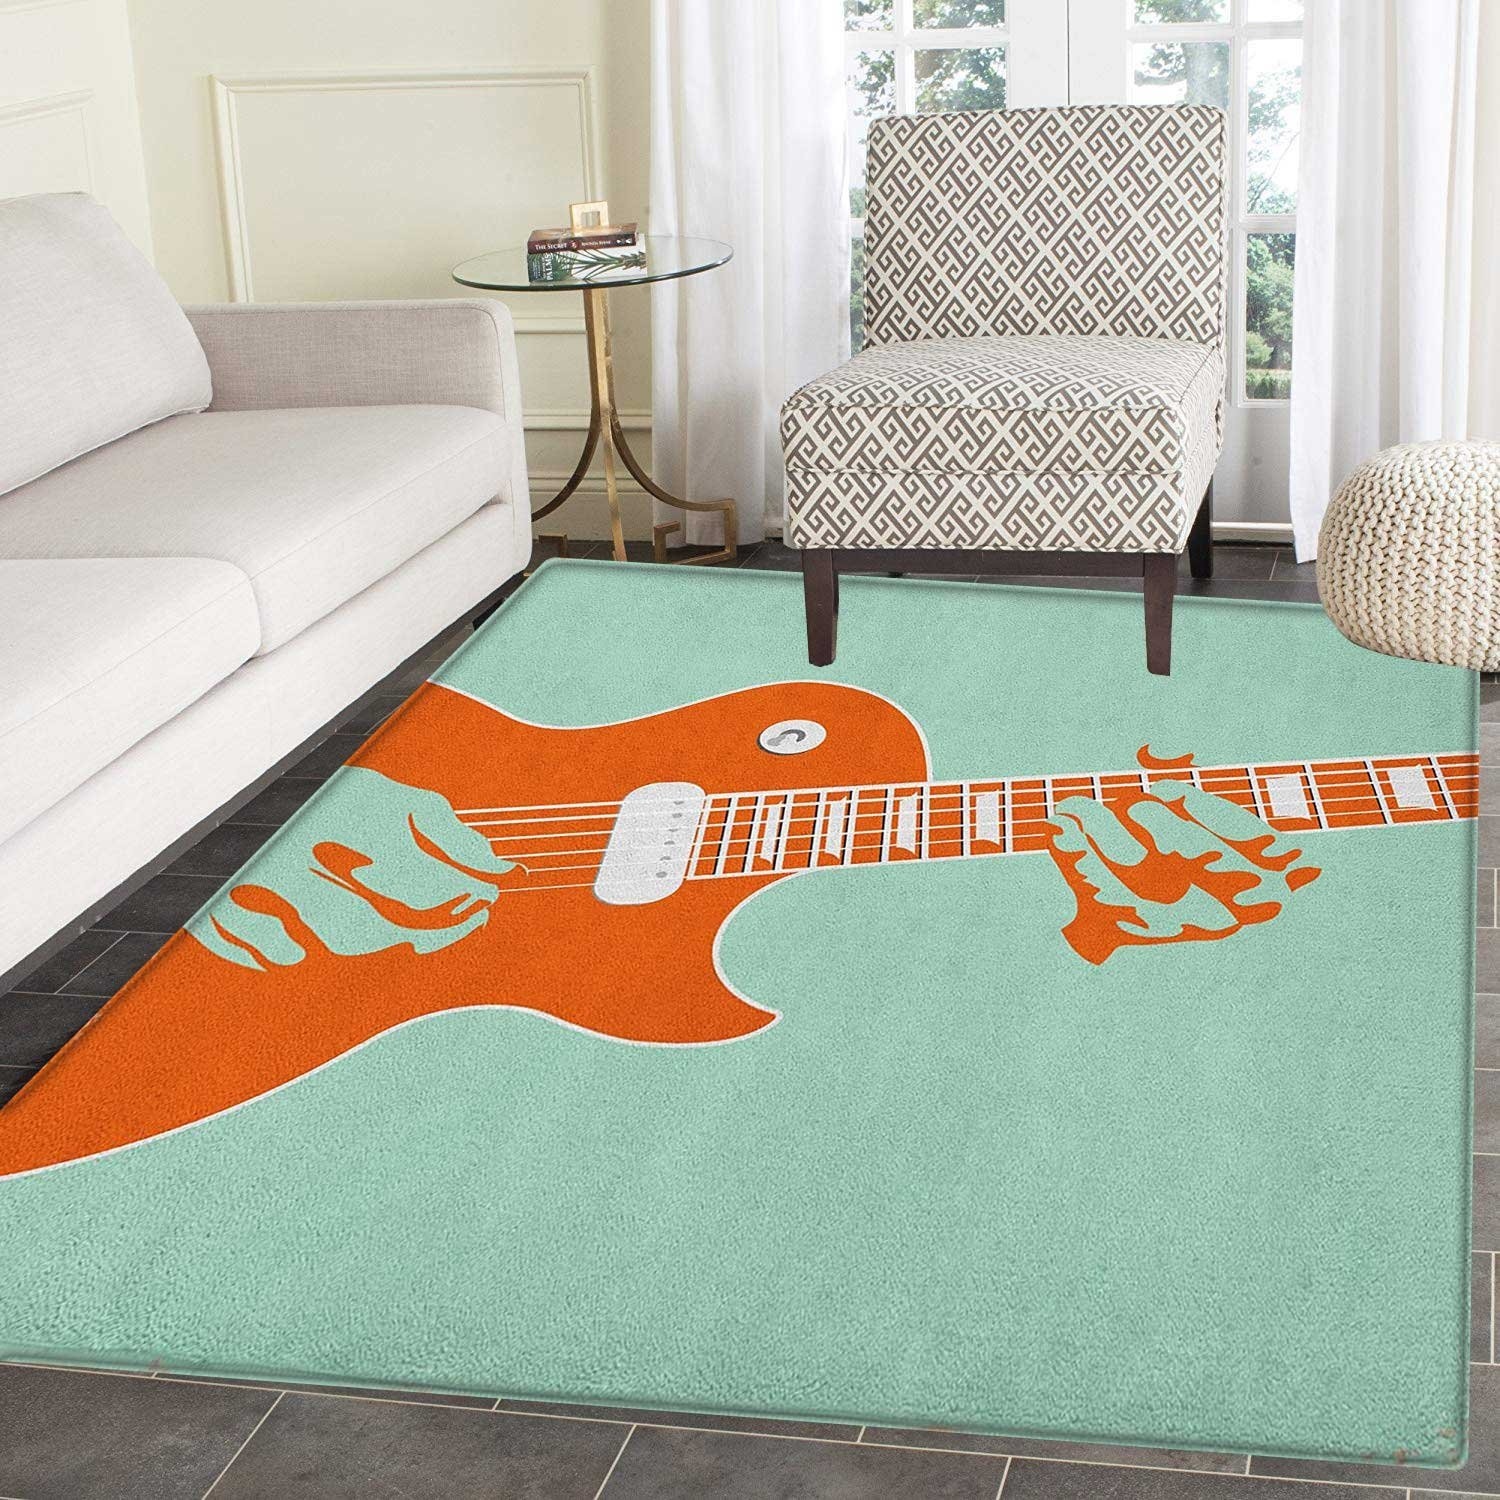 Mint Green Bedroom Decorating Ideas Luxury Amazon Guitar area Rug Carpet Creative Musician Playing